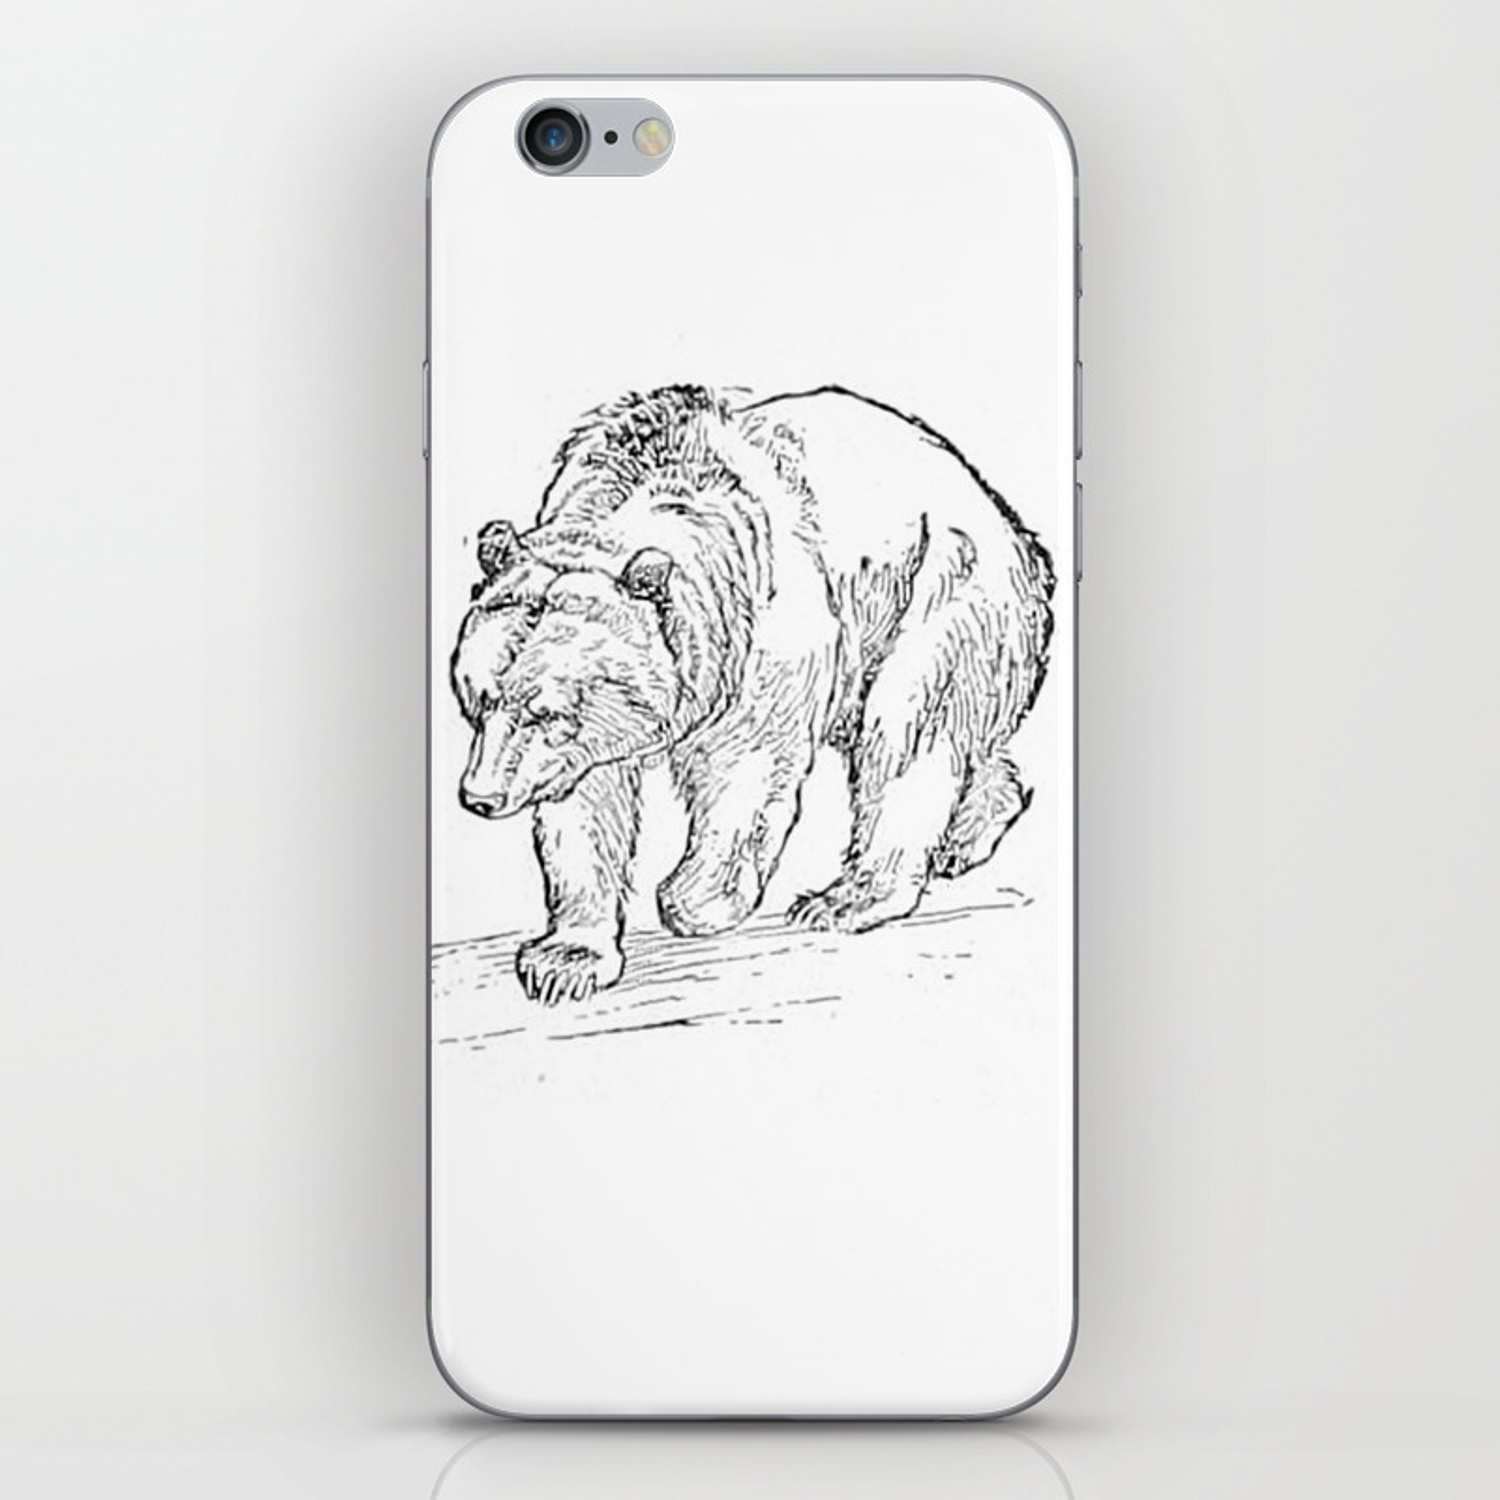 Bear iPhone Skin by upopot